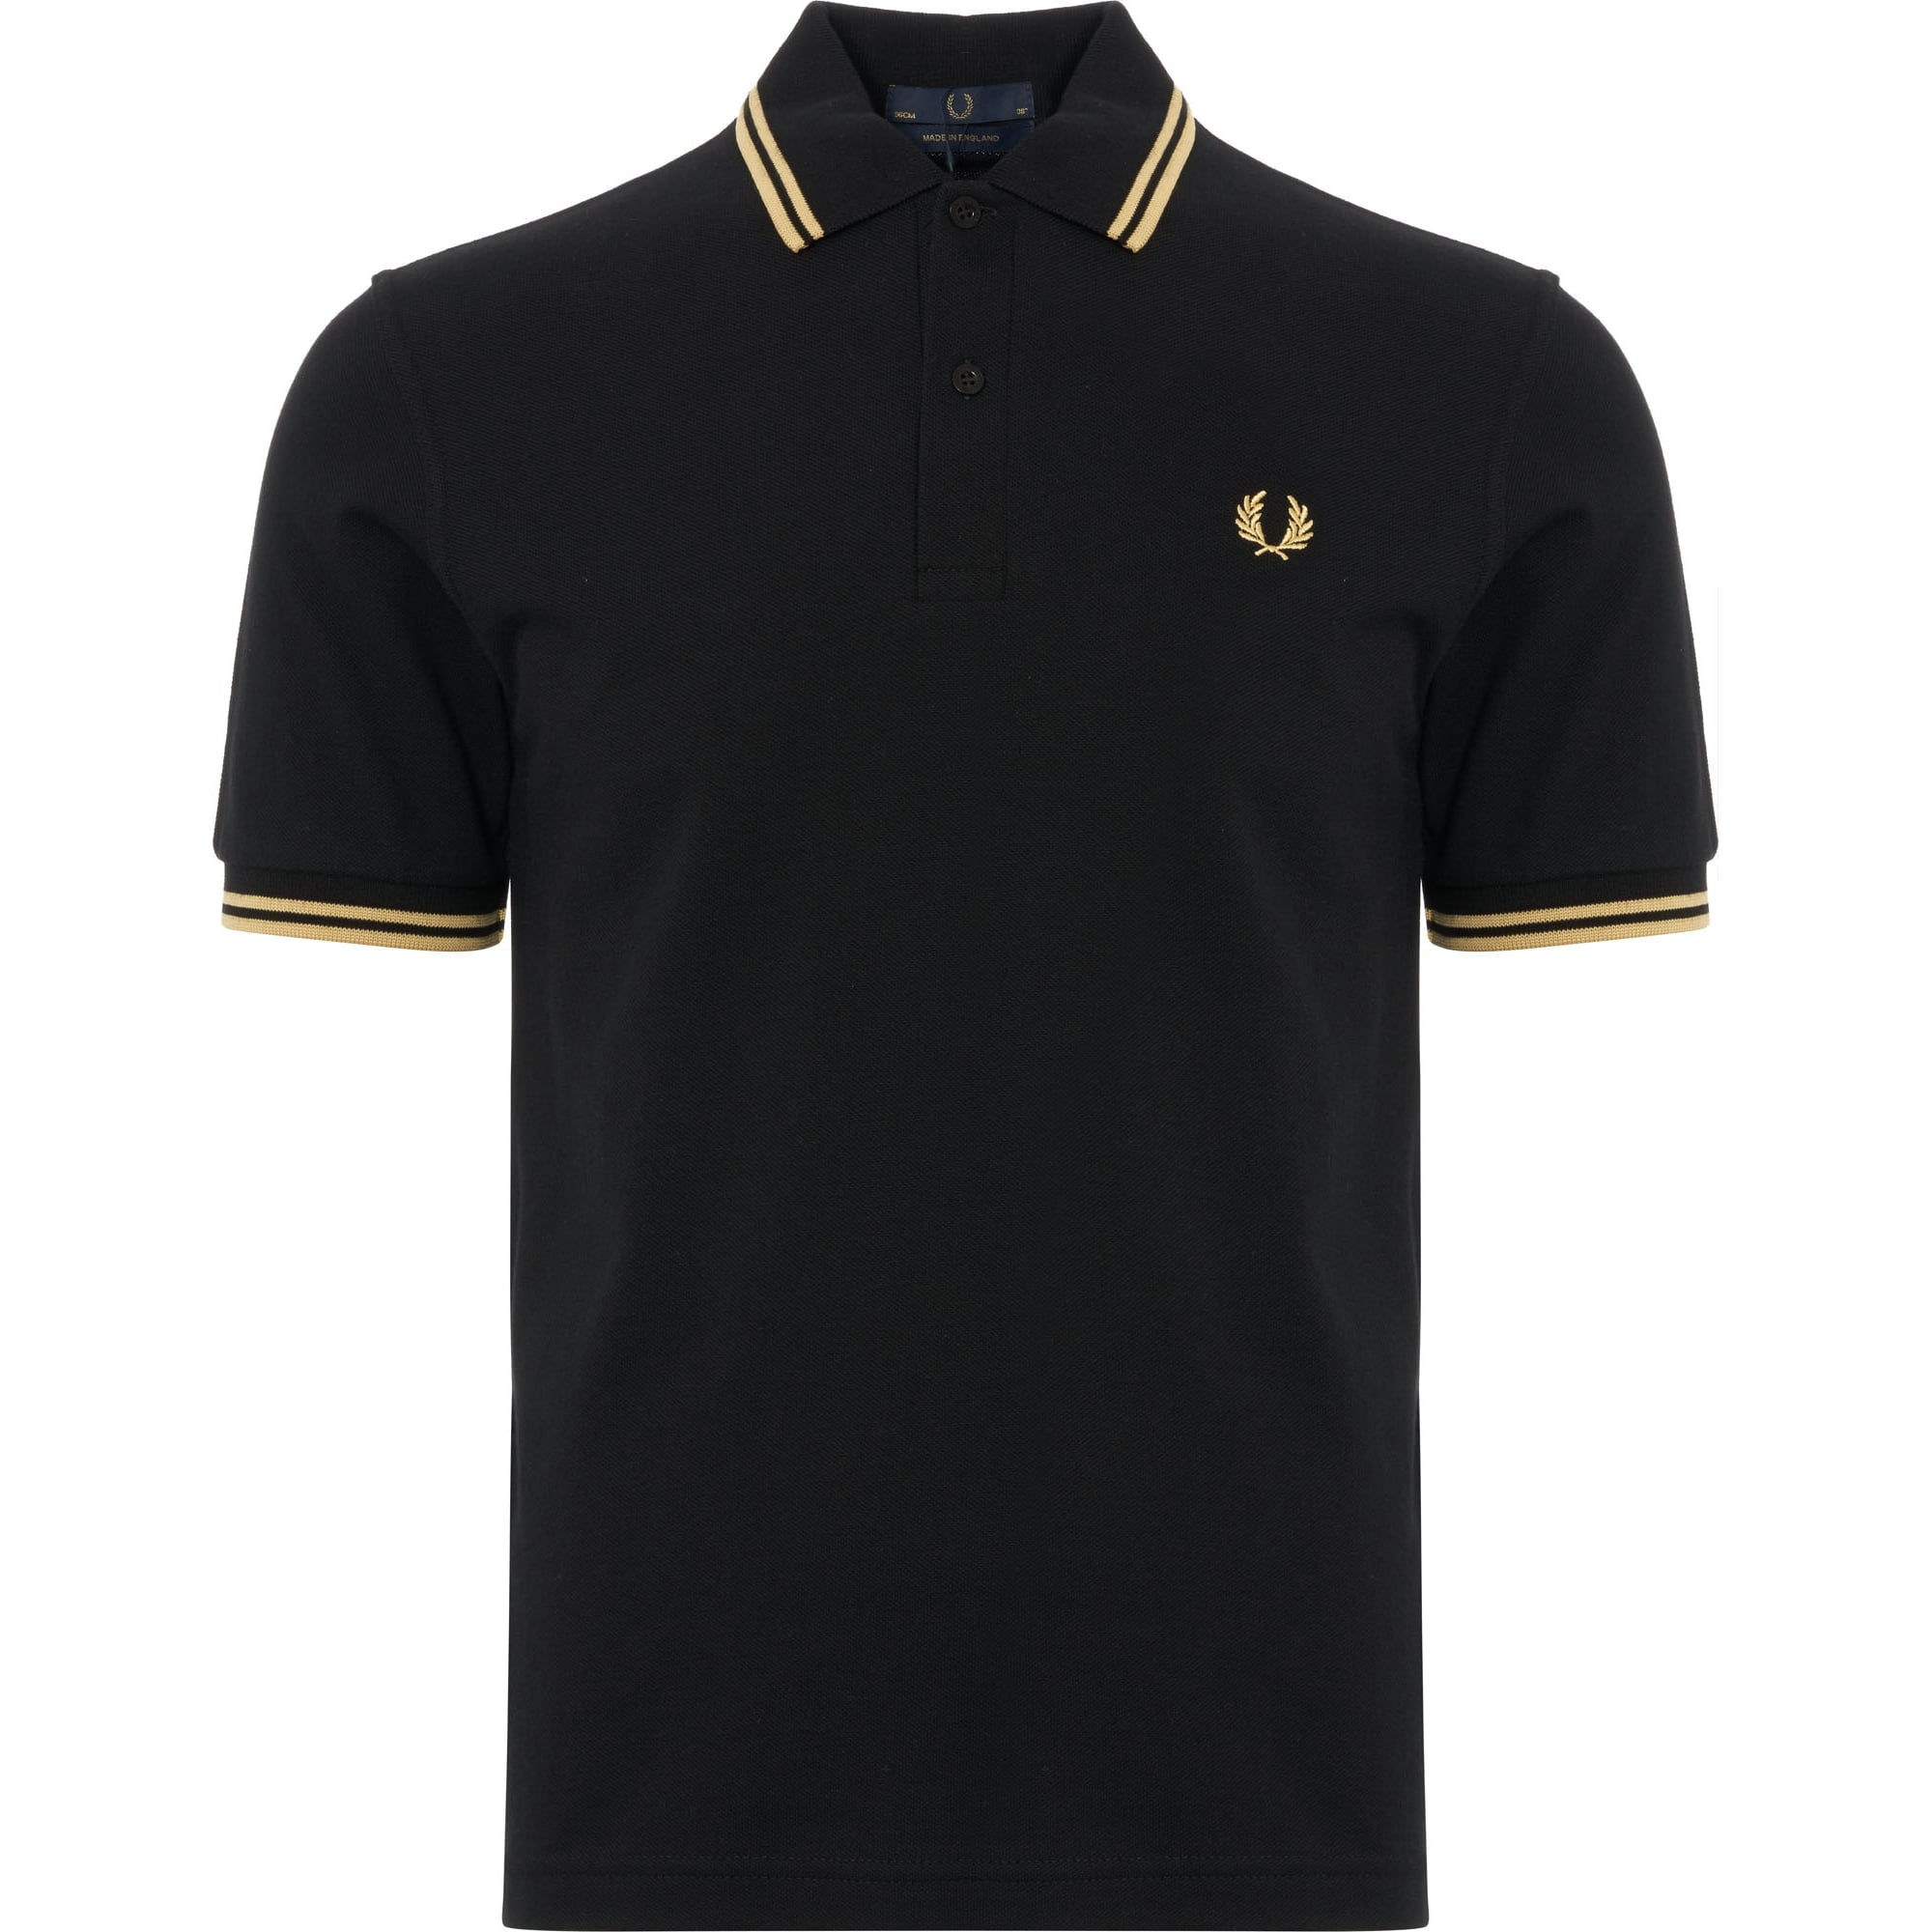 great quality Discover greatvarieties Twin Tipped Polo Shirt - Black & Gold